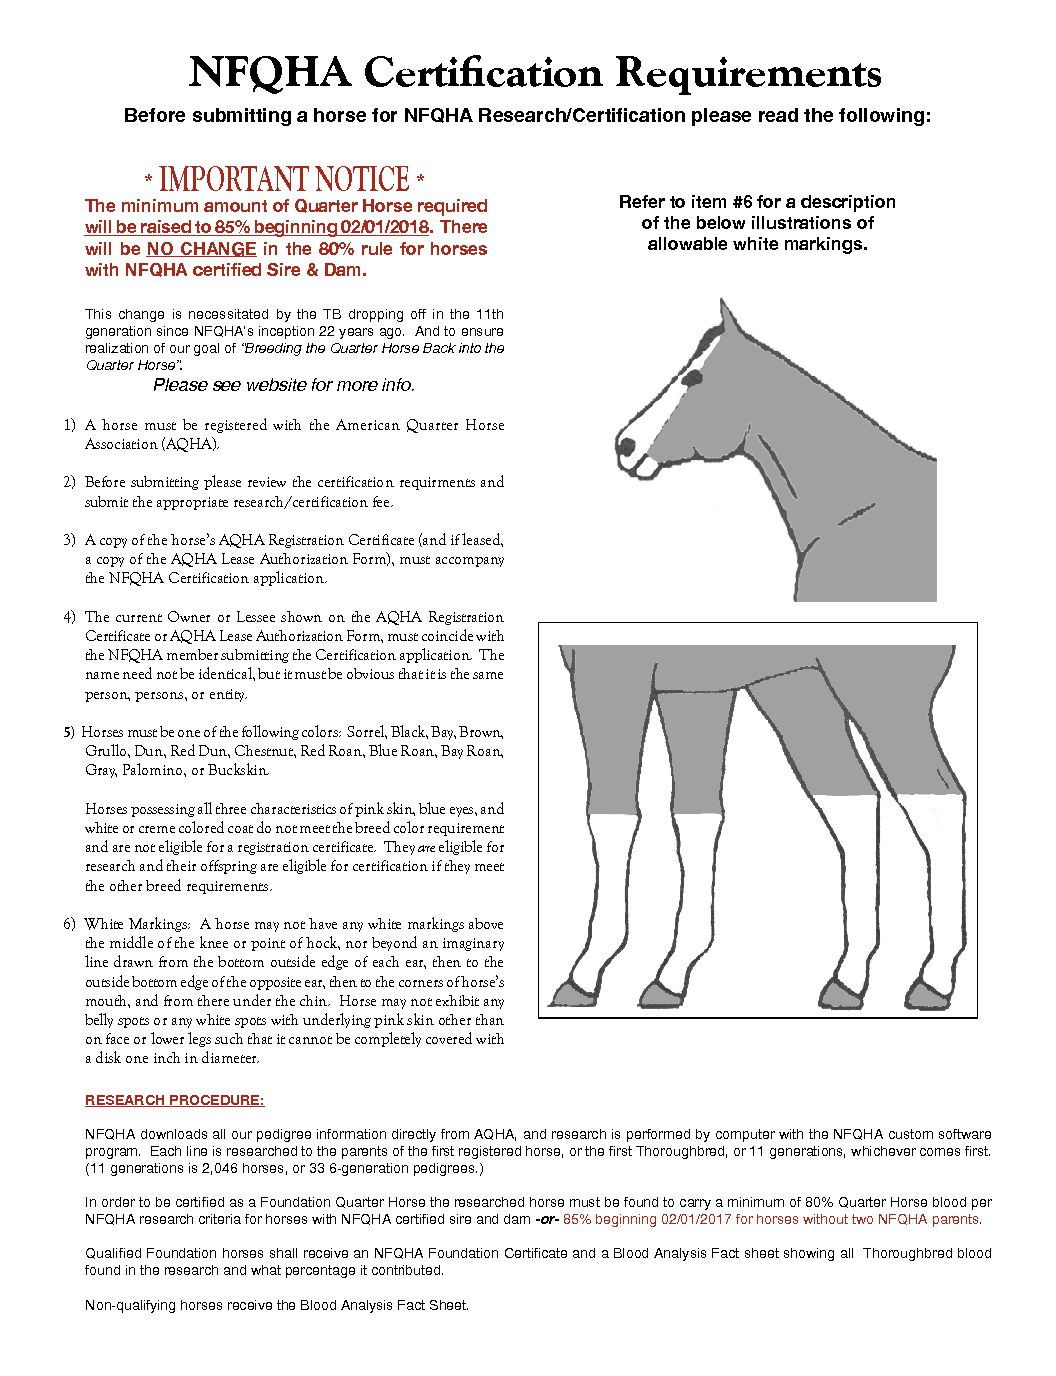 National Foundation Quarter Horse Certification Requirements